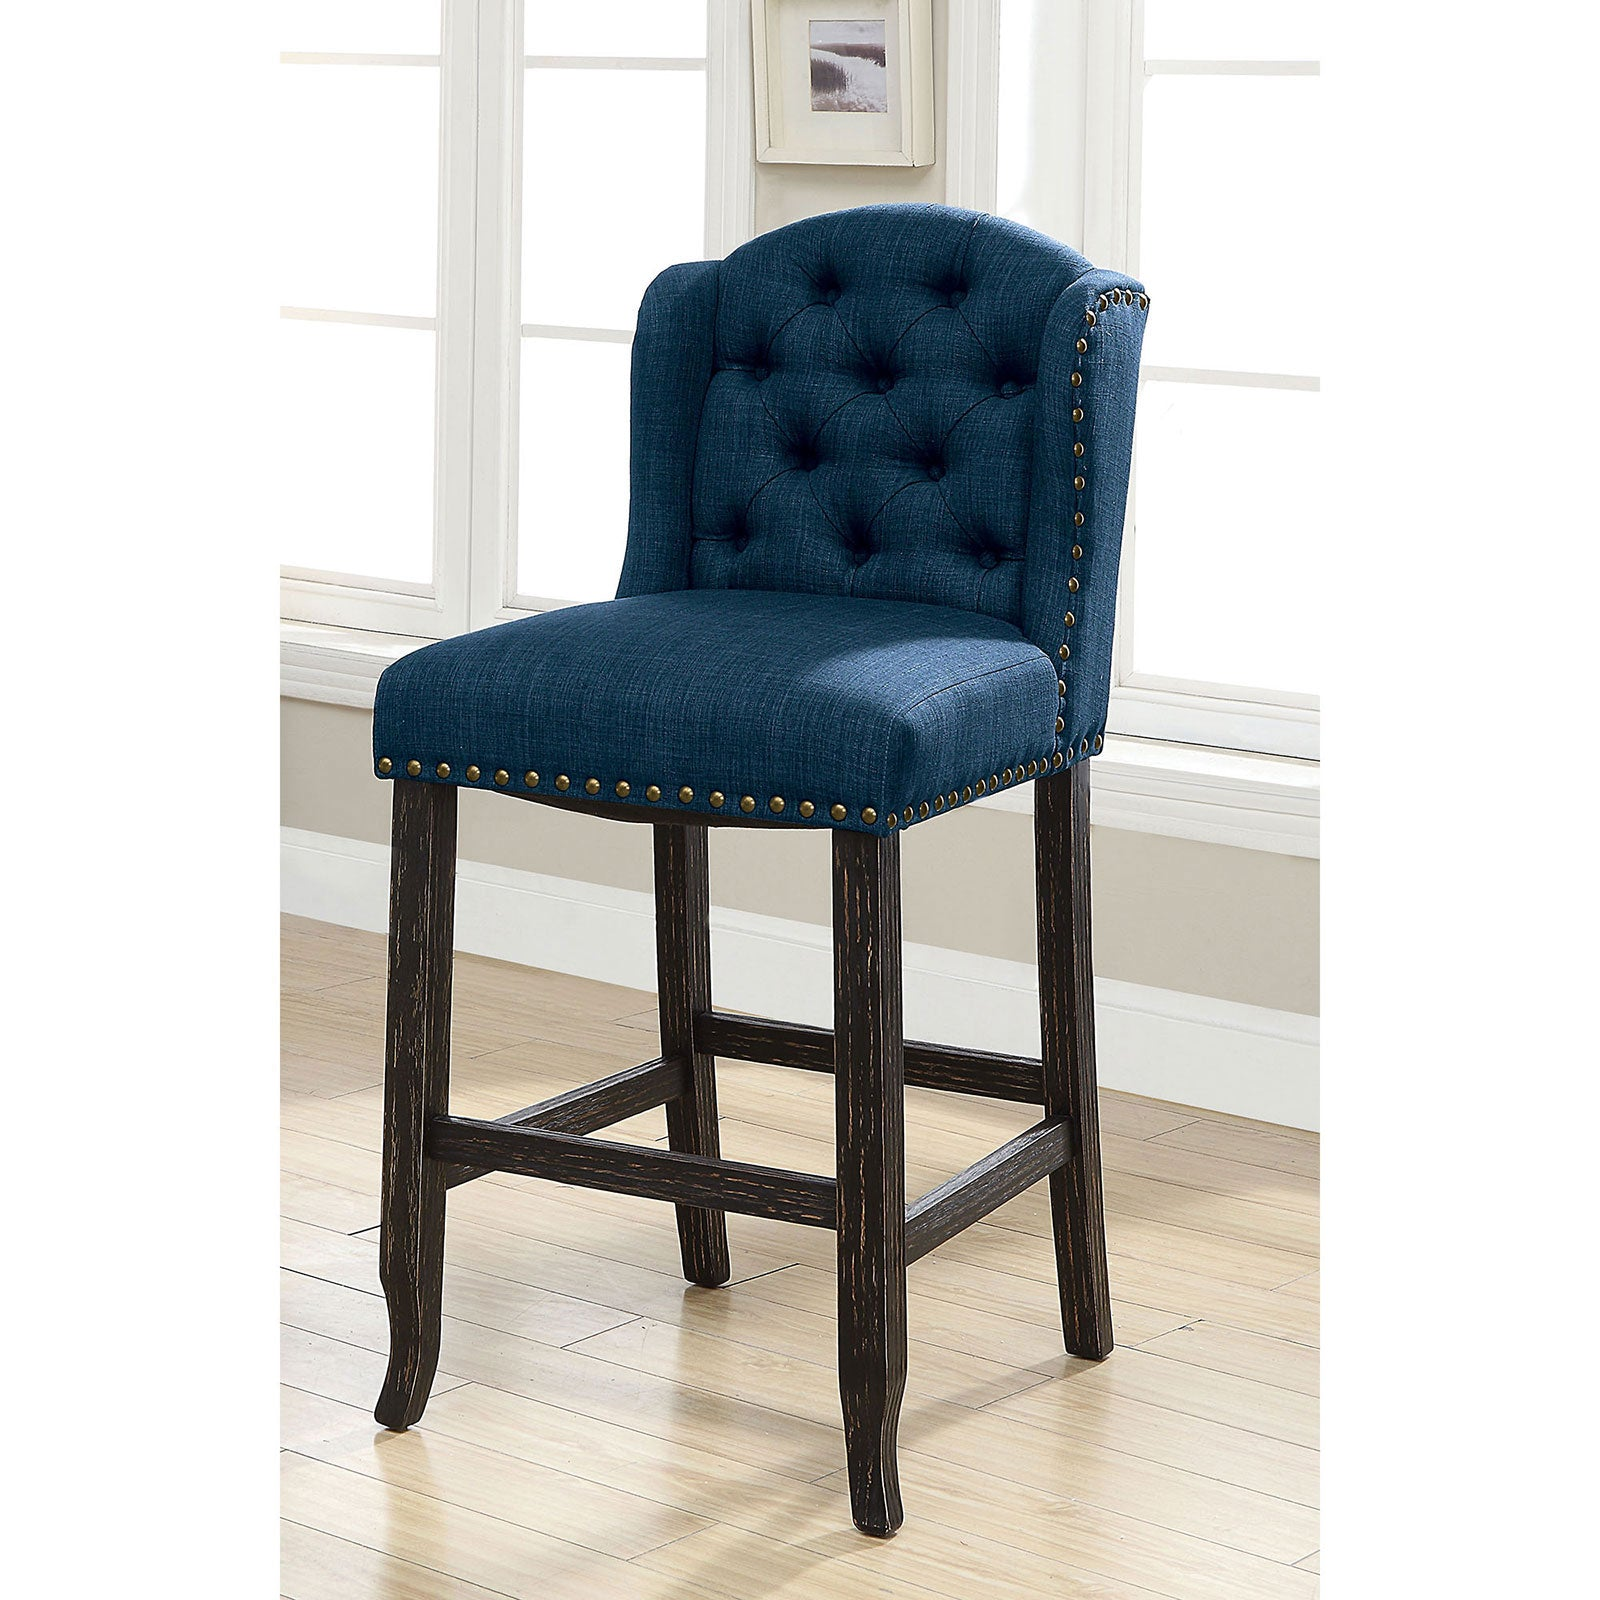 SANIA Antique Black Bar Ht. Wingback Chair (2/CTN)